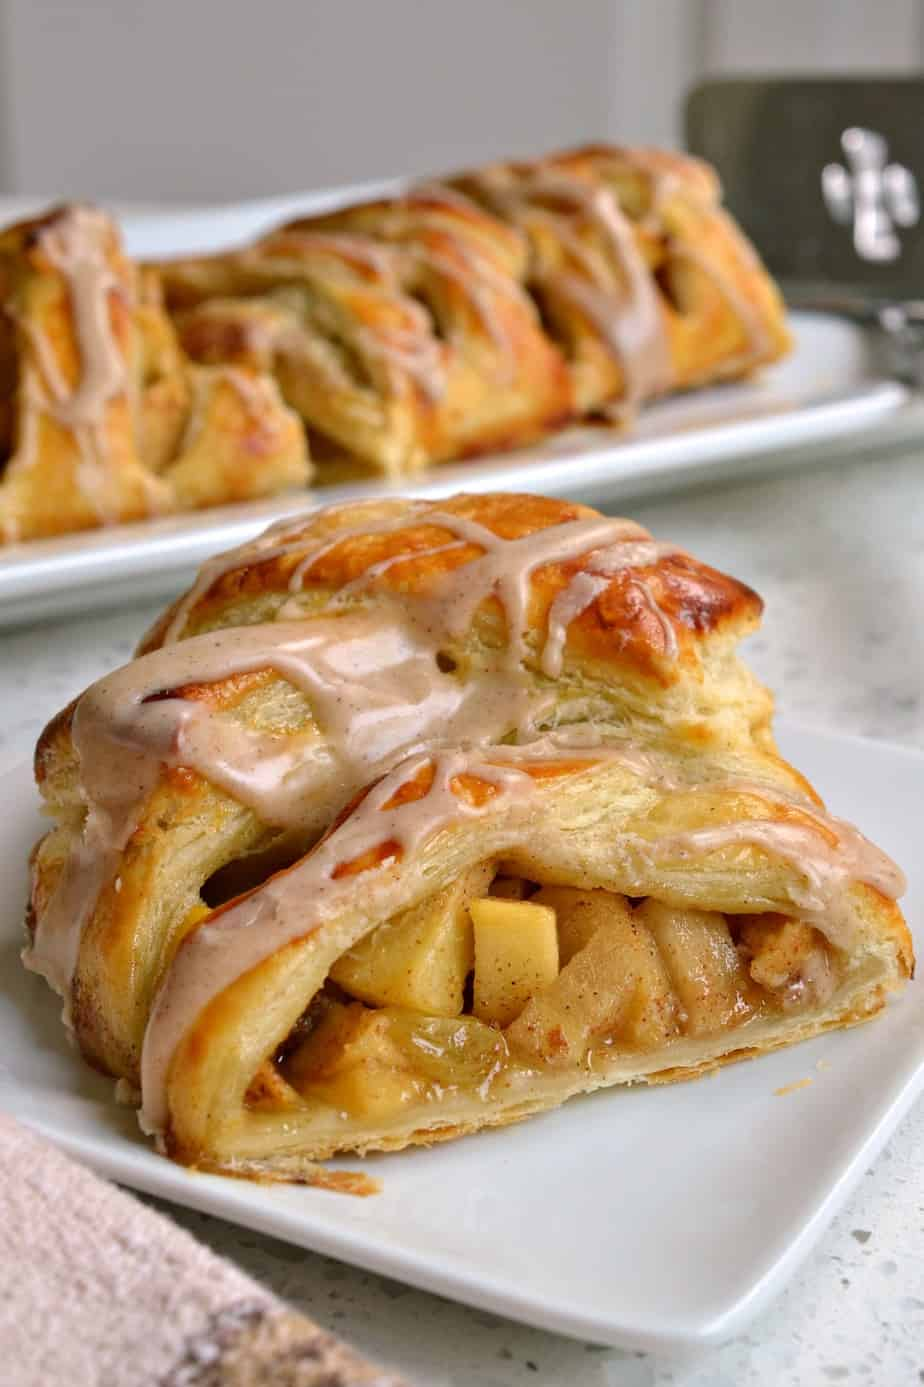 This Apple Strudel is made with ready made puff pastry, fresh apples, raisins, and an easy four ingredient cinnamon glaze.